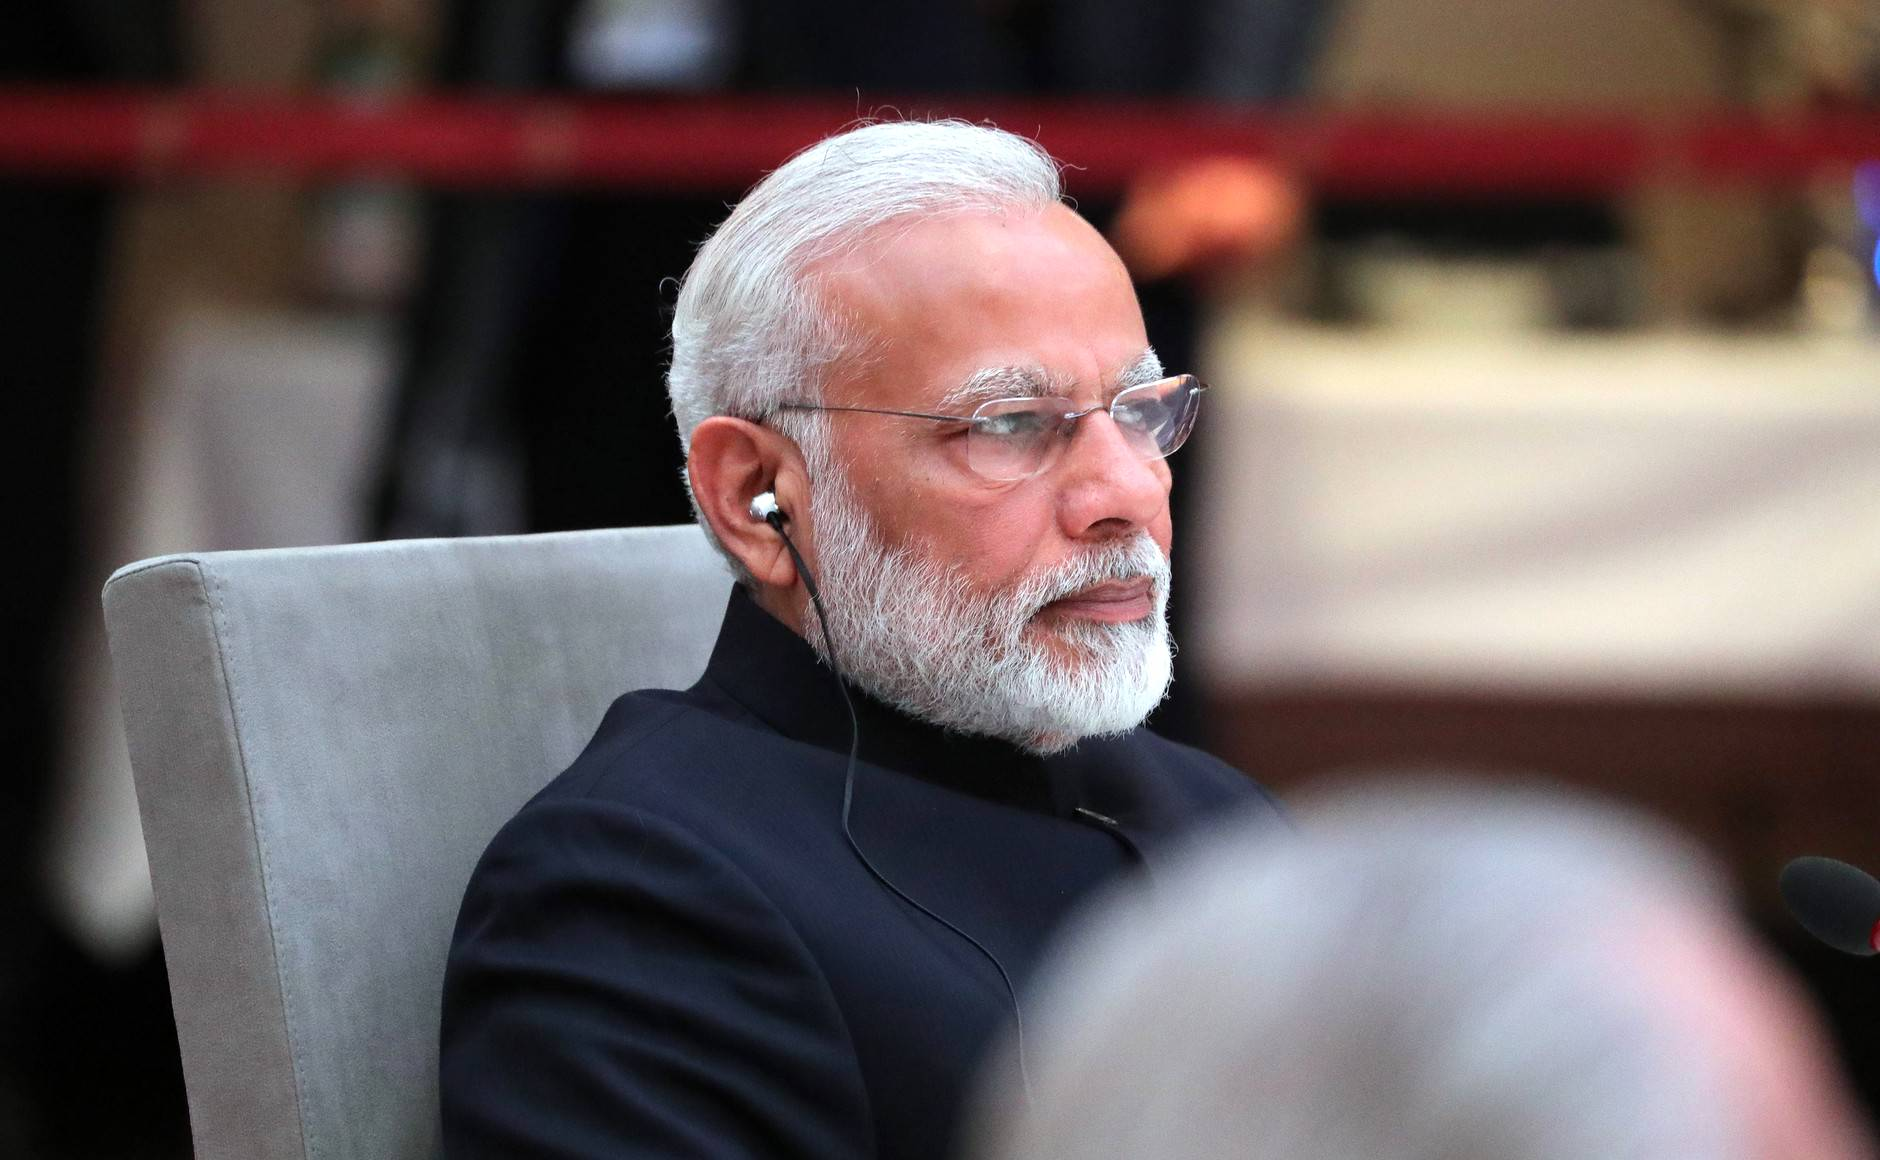 File:Prime Minister of India Narendra Modi at an informal meeting of heads of state and government of the BRICS countries, Hamburg 2017.jpg - Wikimedia Commons